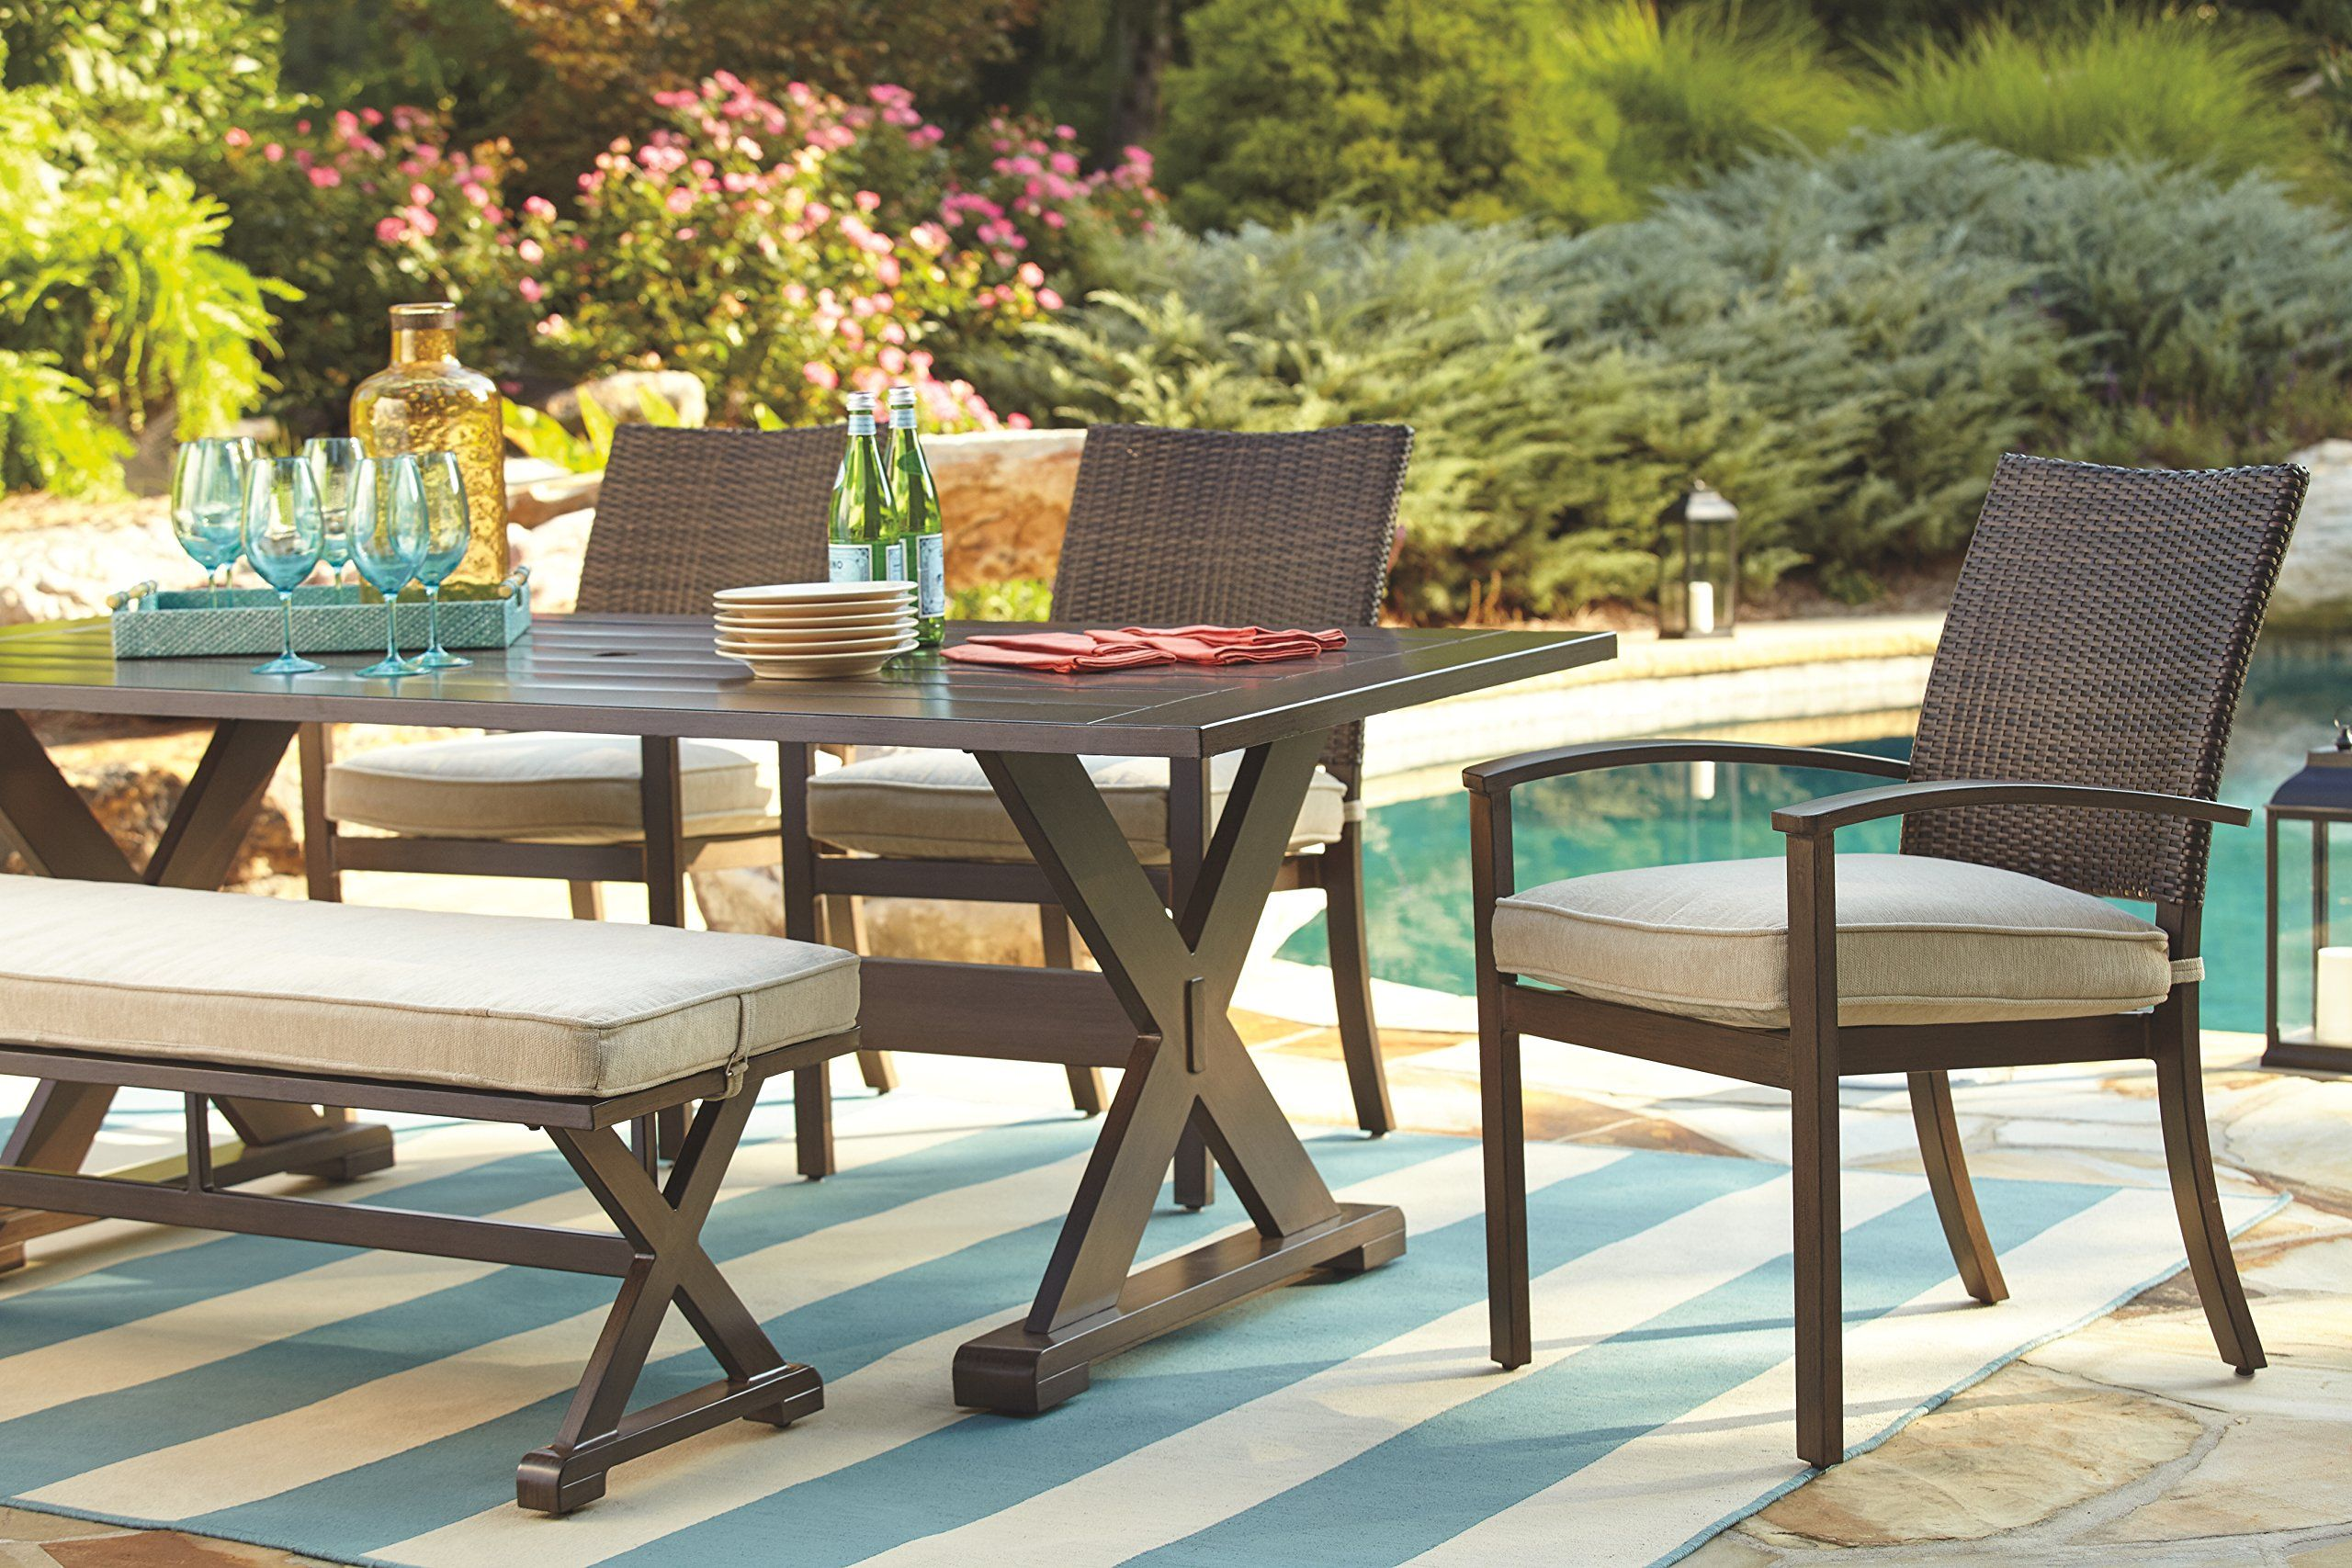 Ashley Furniture Signature Design Moresdale Outdoor Dining